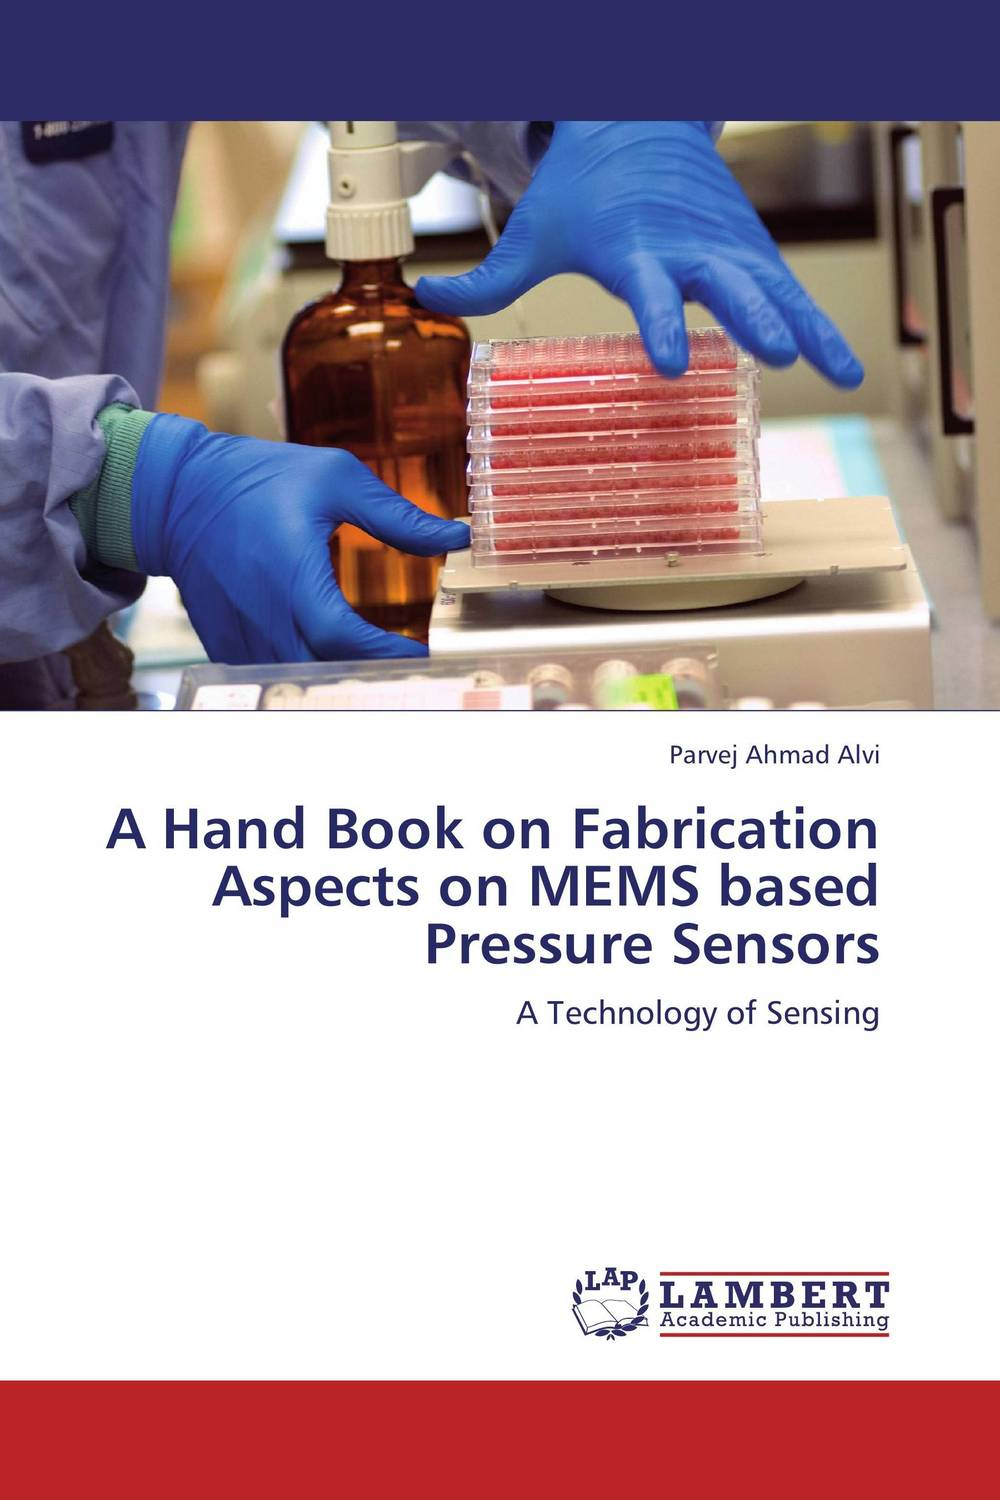 A Hand Book on Fabrication Aspects on MEMS based Pressure  Sensors minhang bao analysis and design principles of mems devices